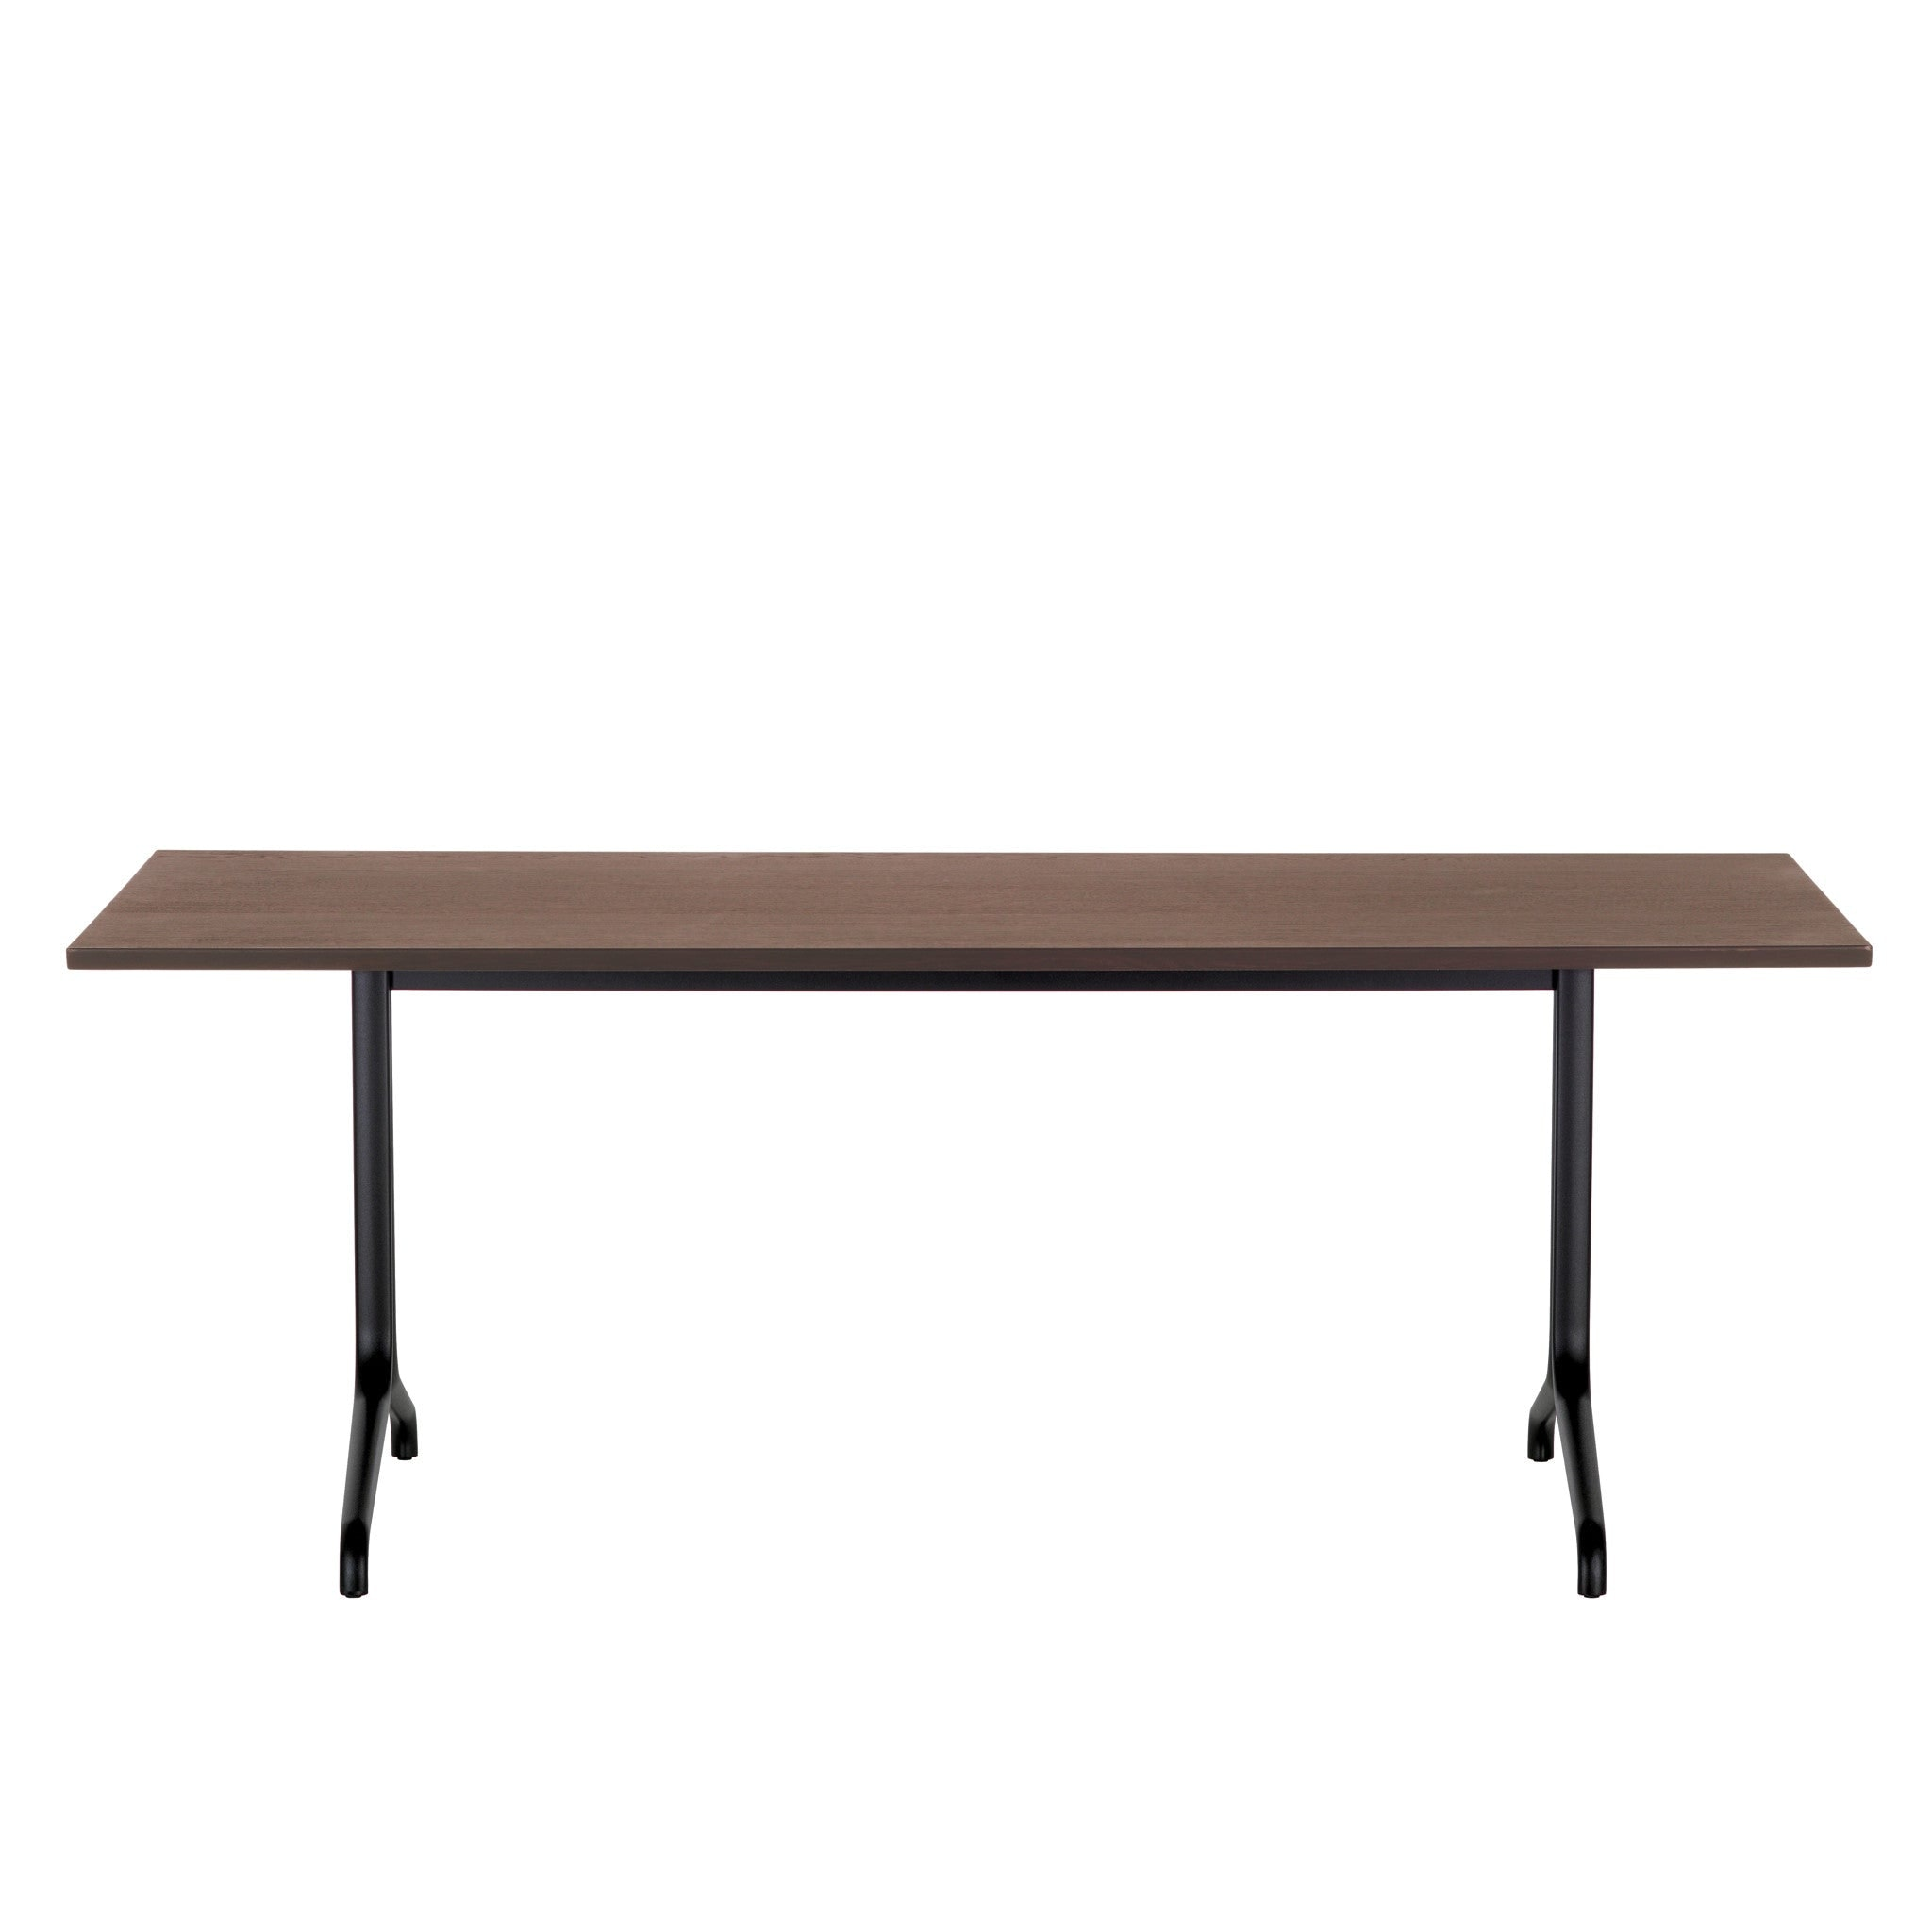 Belleville Indoor Table by Vitra